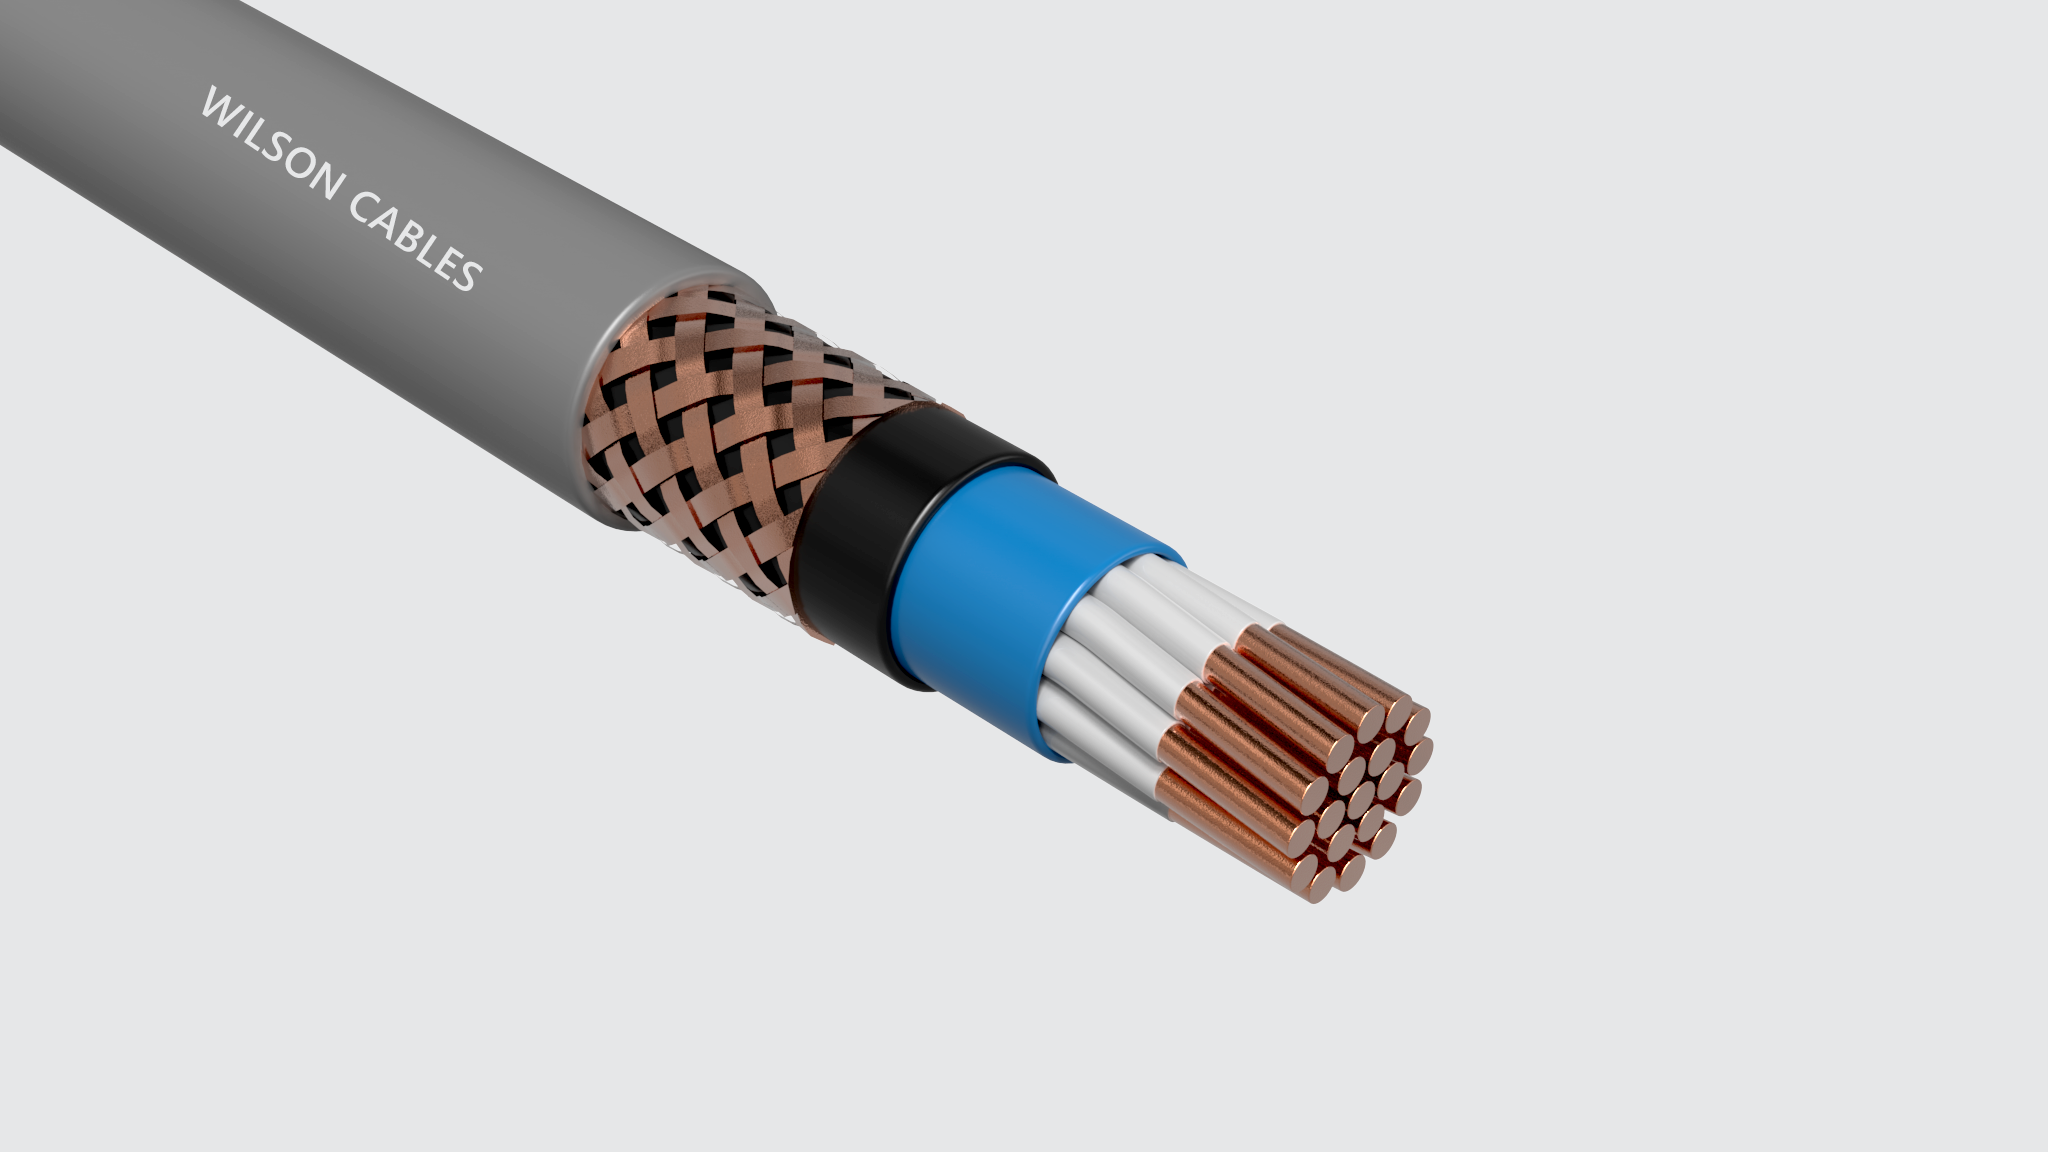 MIM-210Q / MIM-210C PVC Sheathed Shipboard Braided Instrumentation Cables